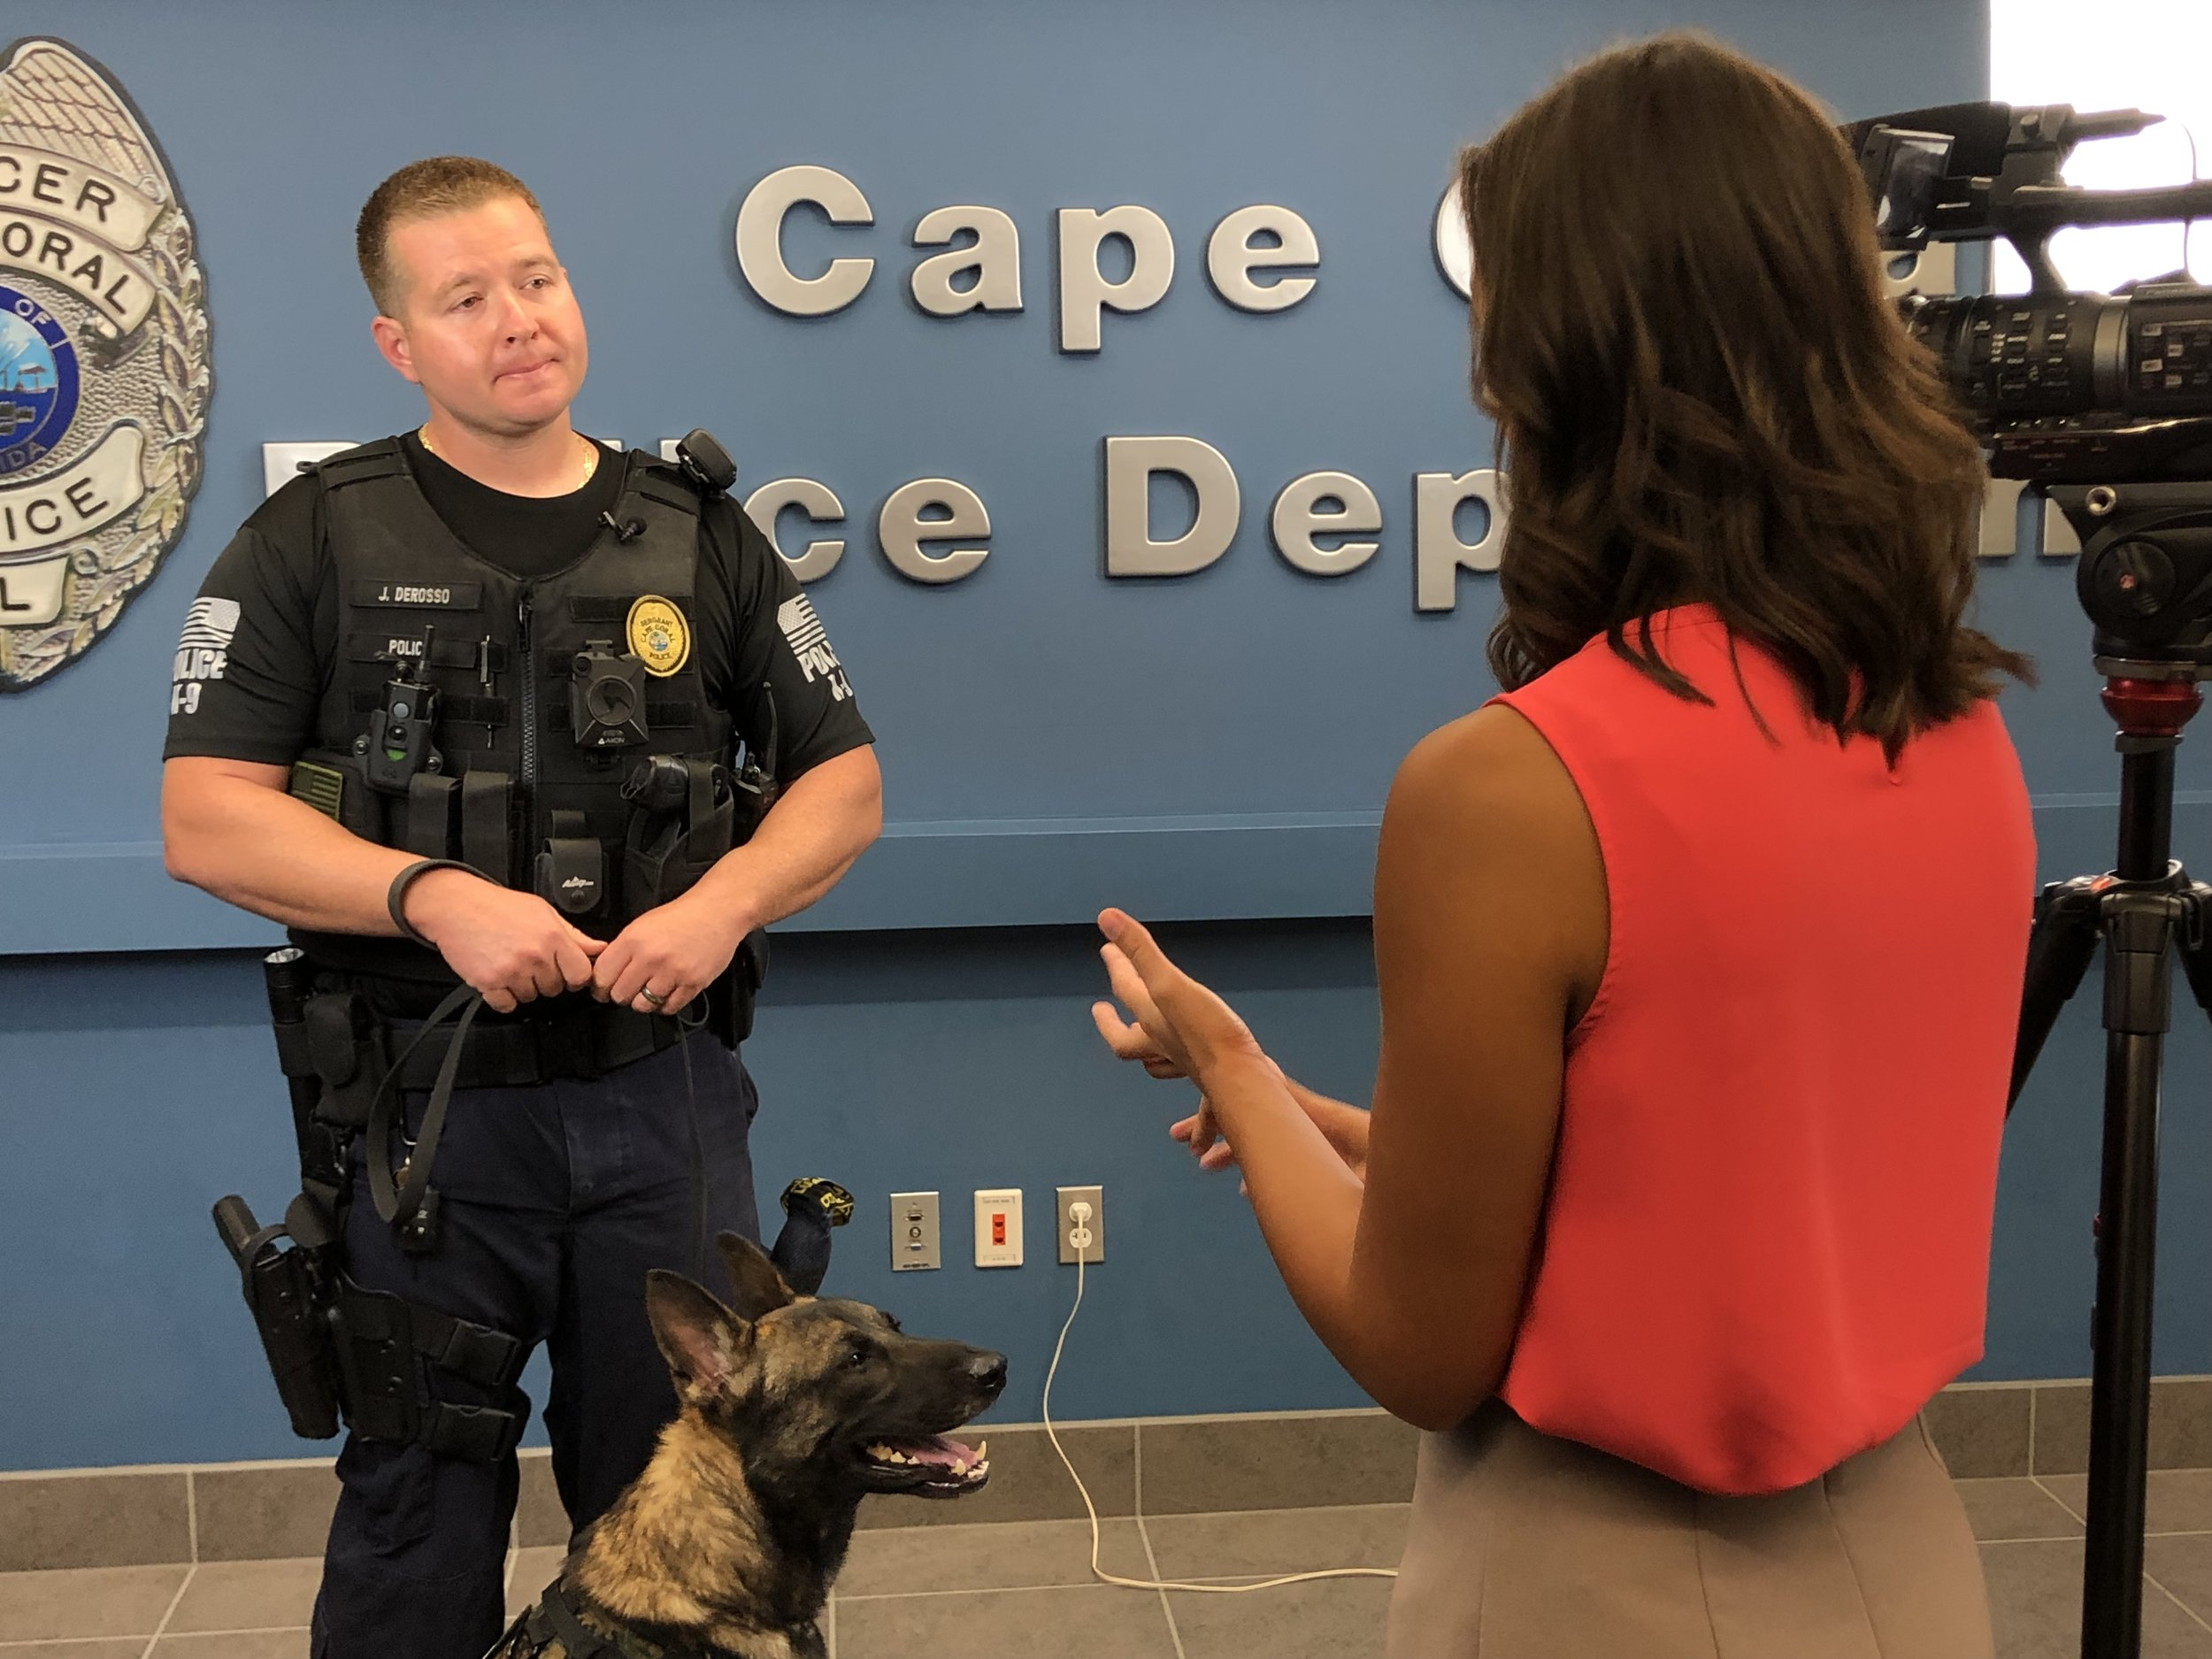 K9 Unit Sgt. Derosso speaks with WINK News, while K9 Dallas mugs for the camera.